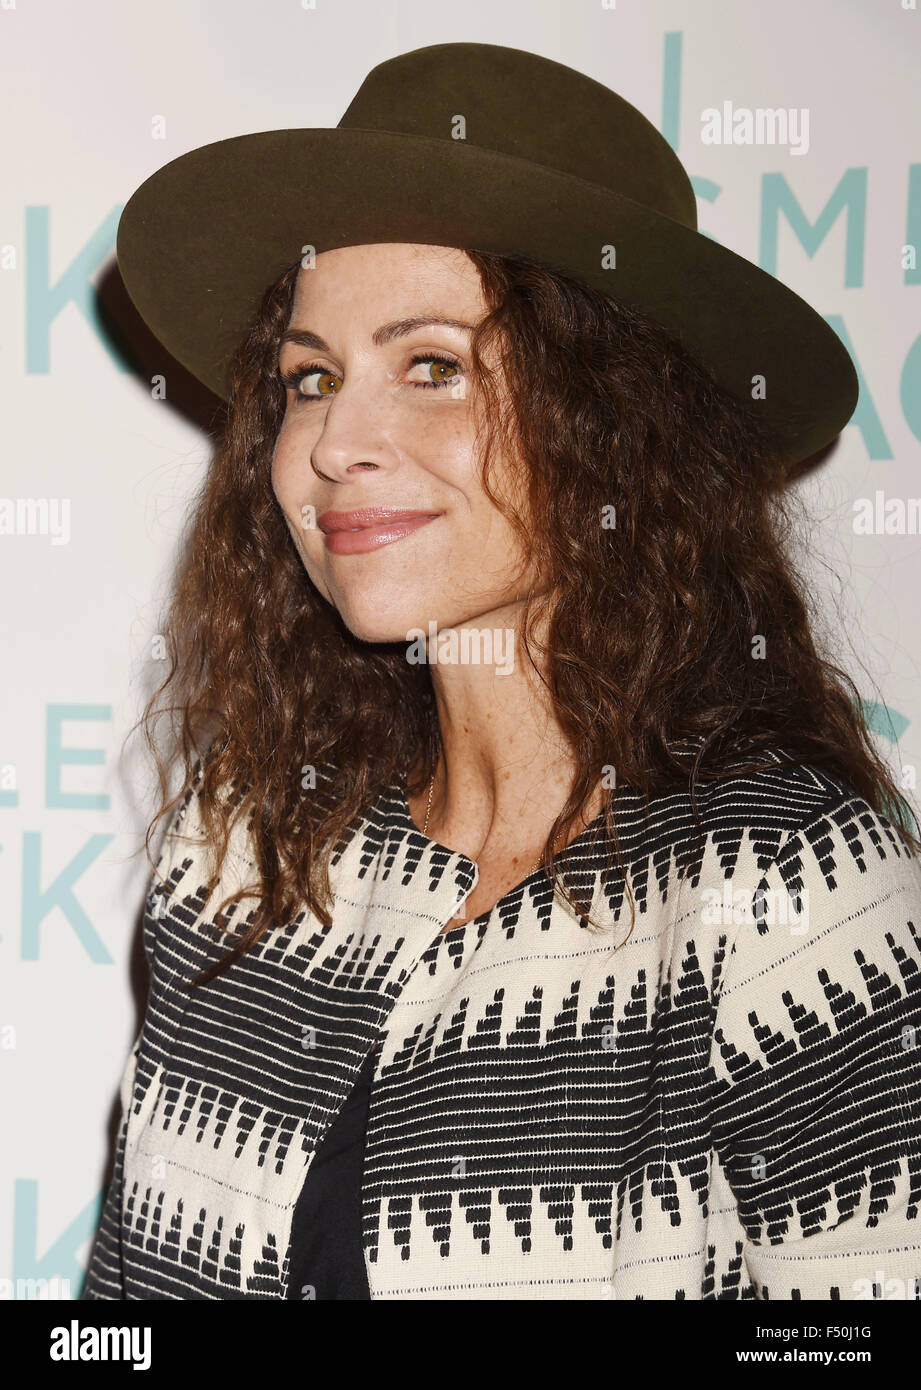 Hacked Minnie Driver naked (44 photos), Topless, Hot, Twitter, swimsuit 2020